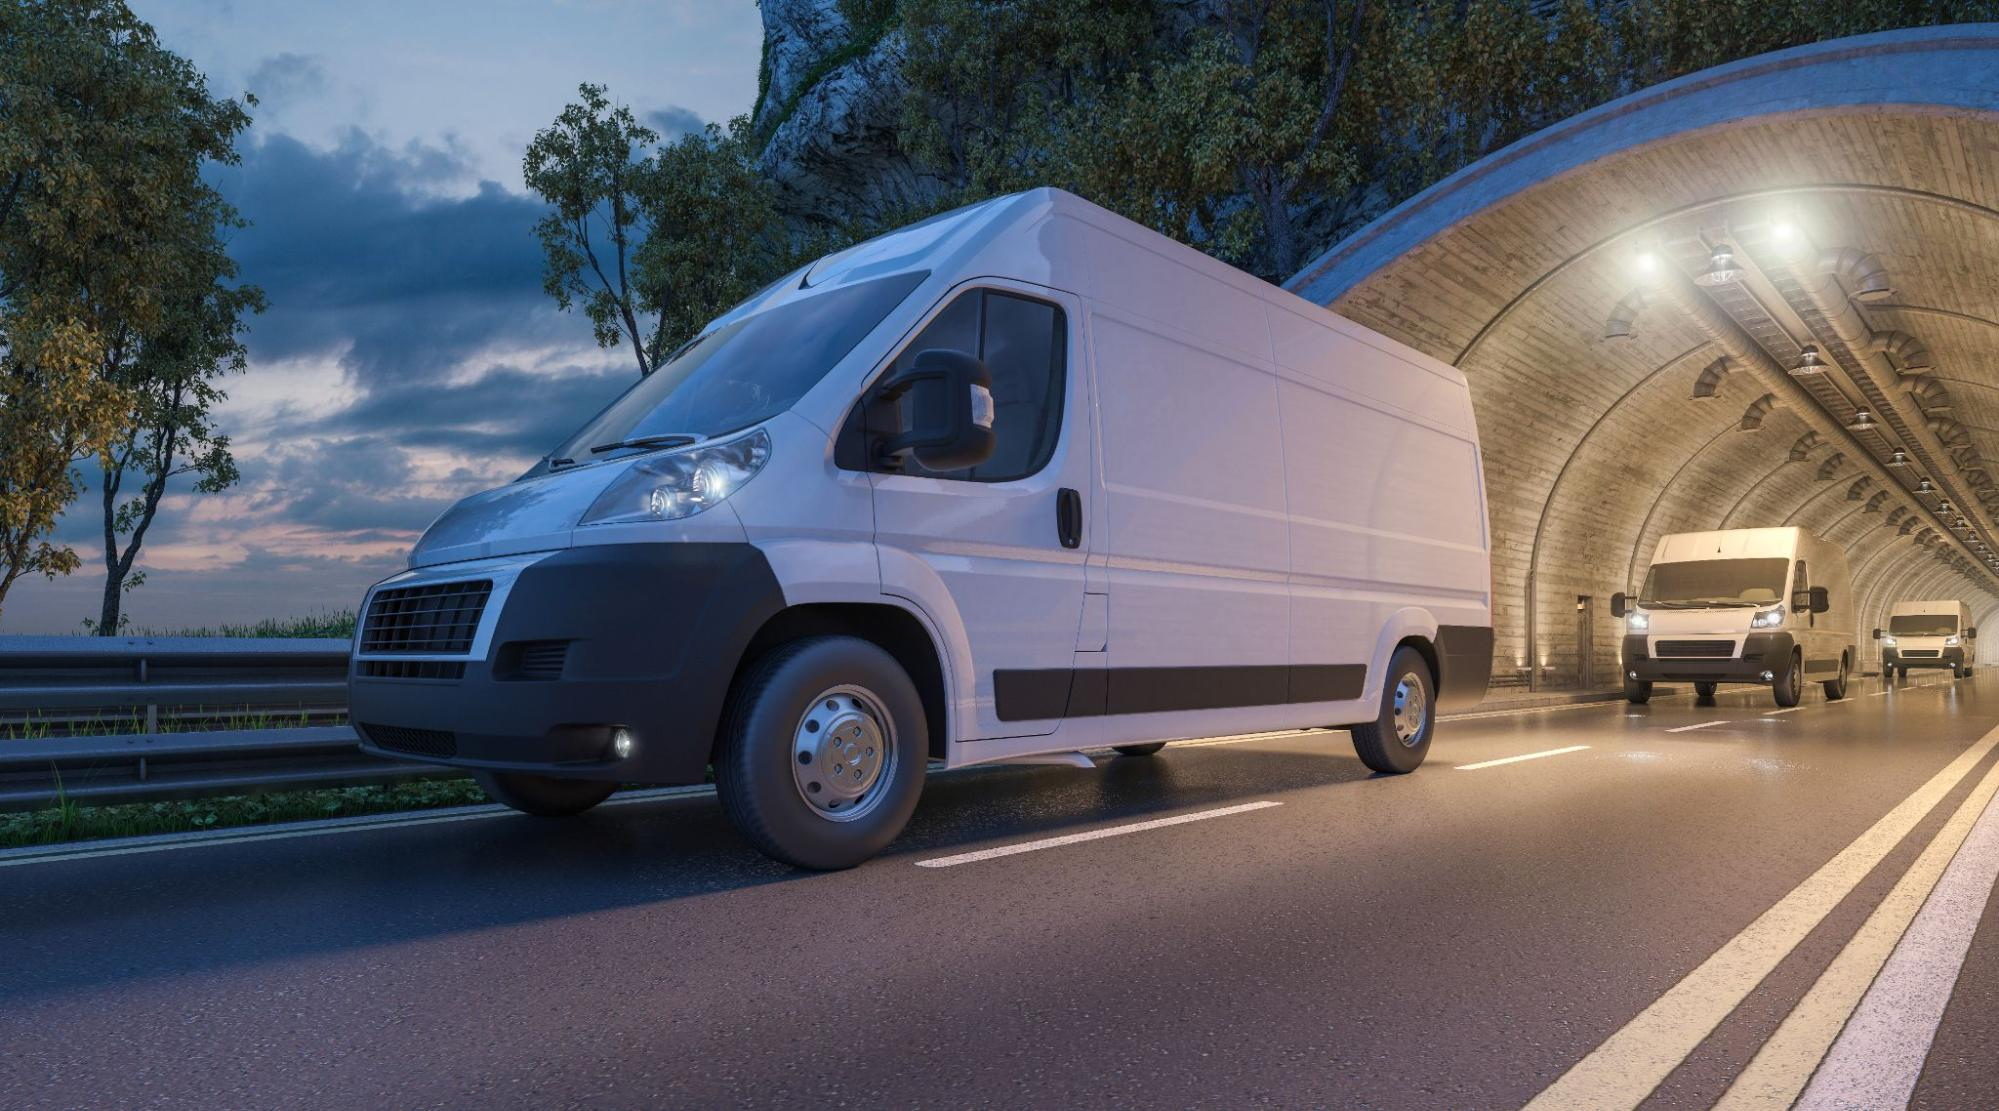 Commercial vans going out of a tunnel